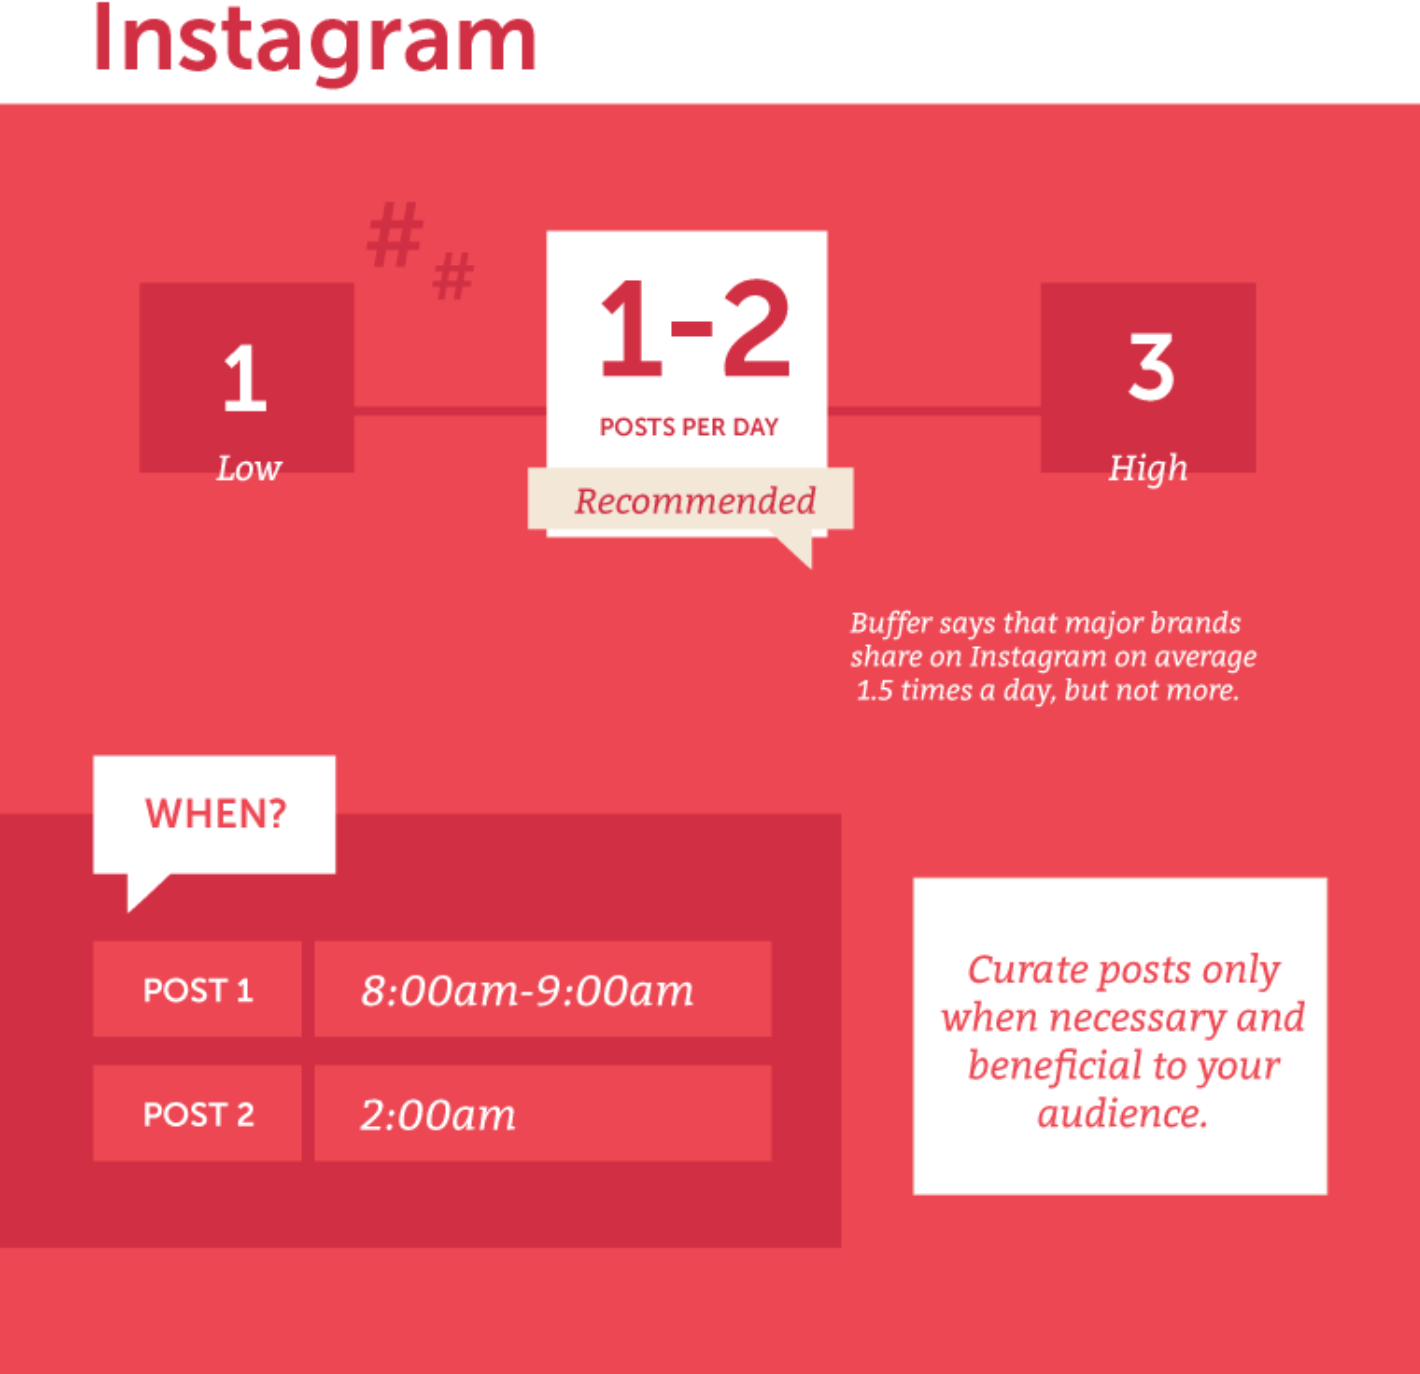 social influencer post per day